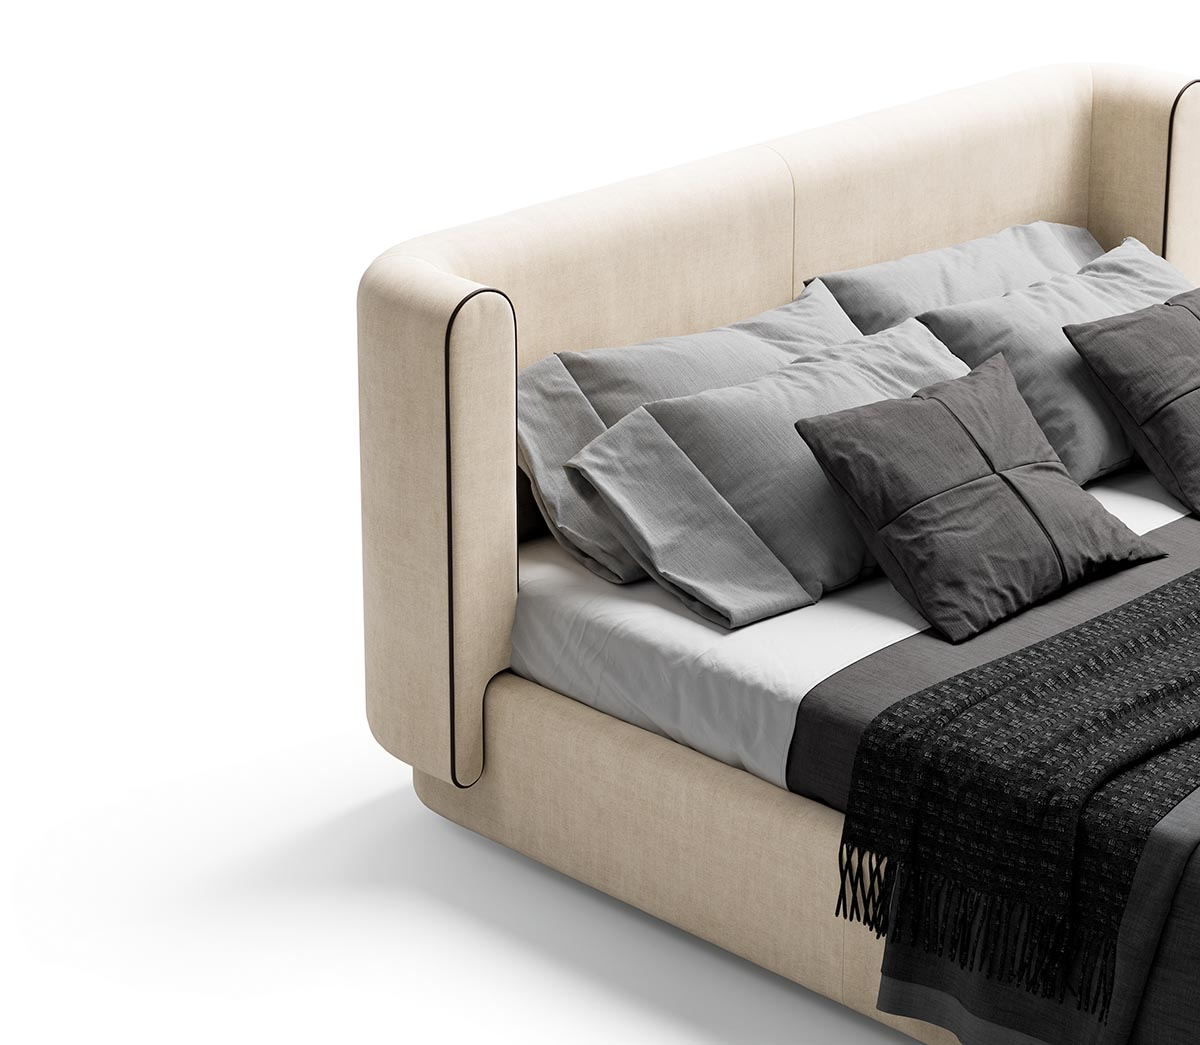 Uptoyou Bed